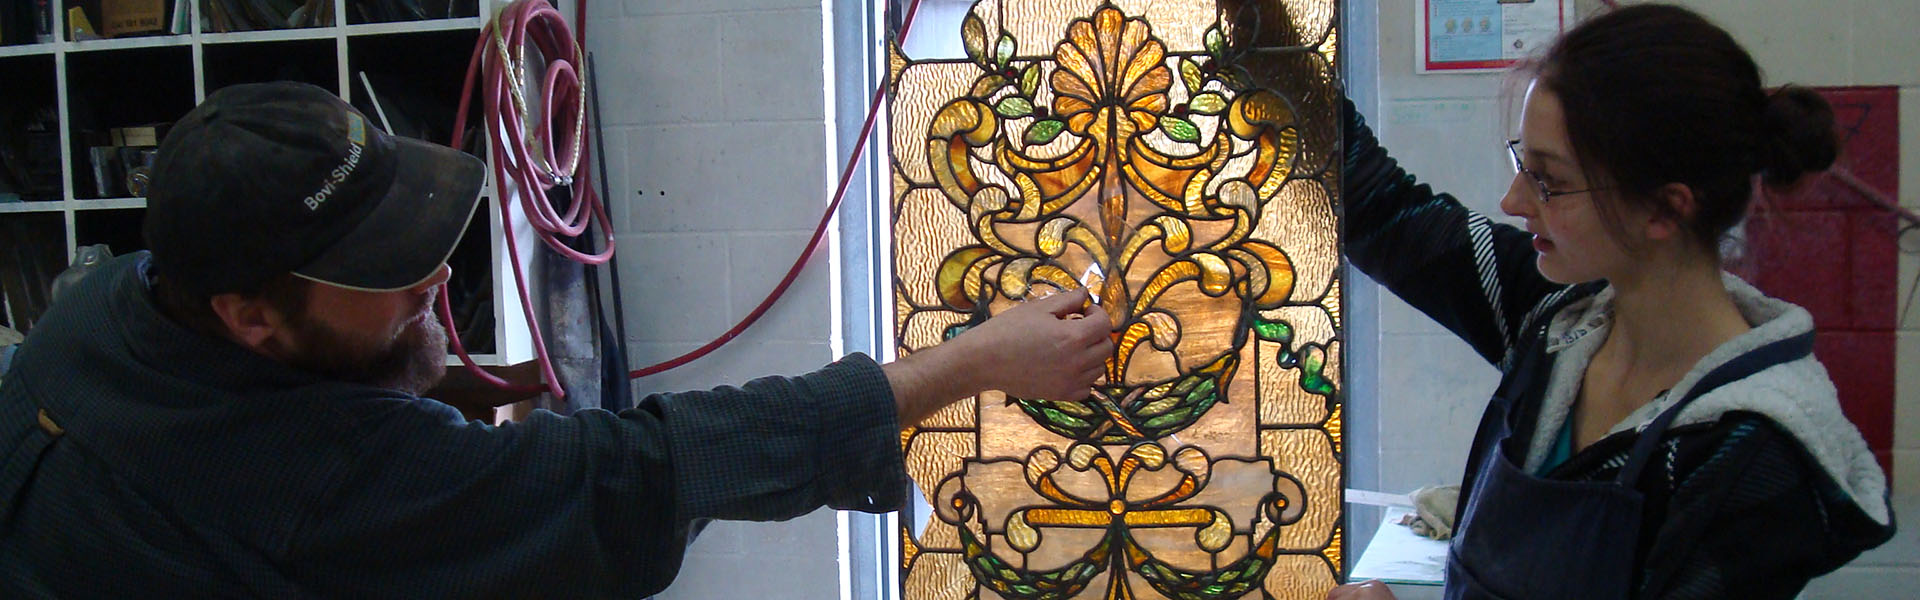 Fulford Place Window Conservation 2009